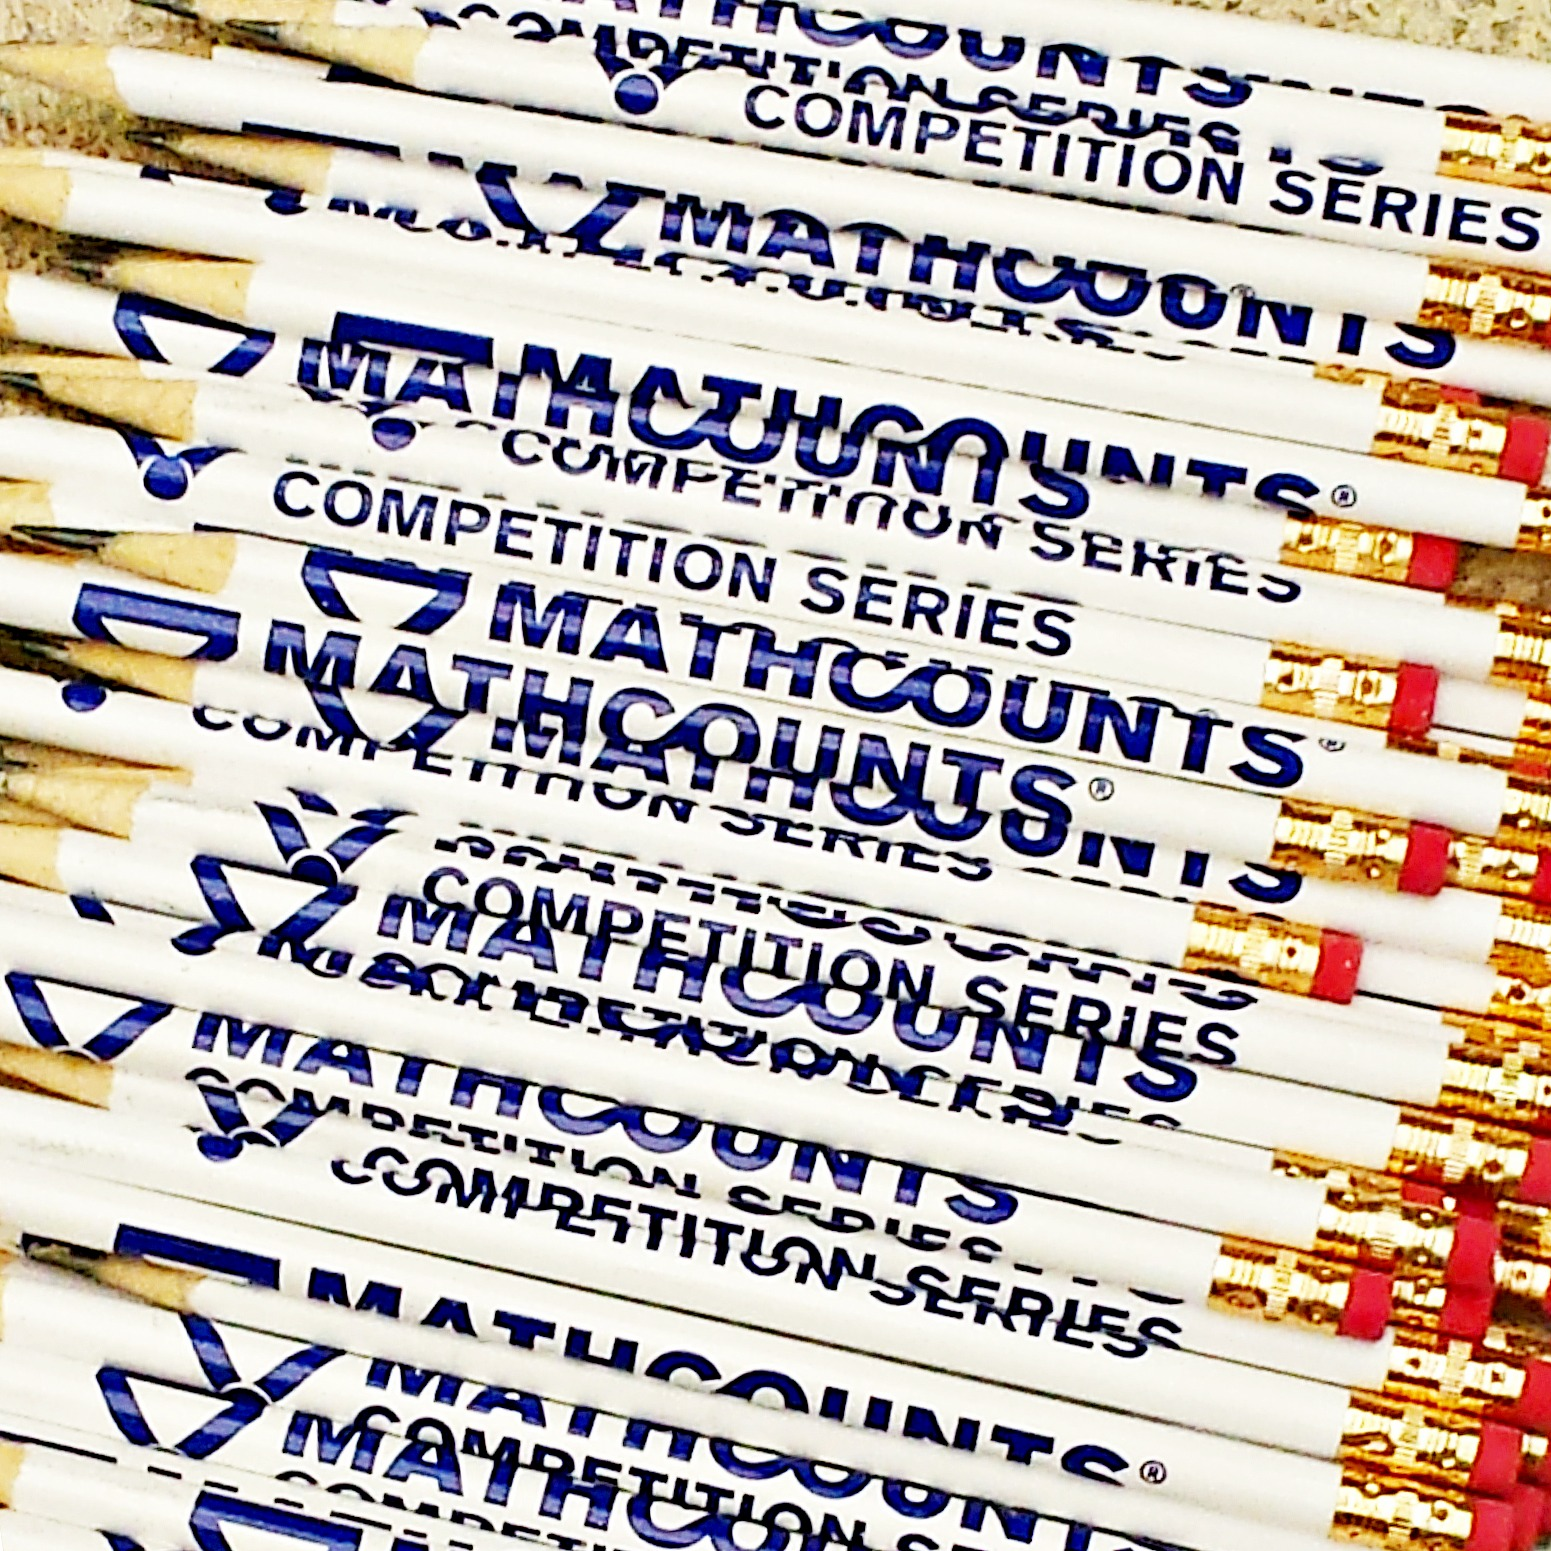 Mathcounts Pencils